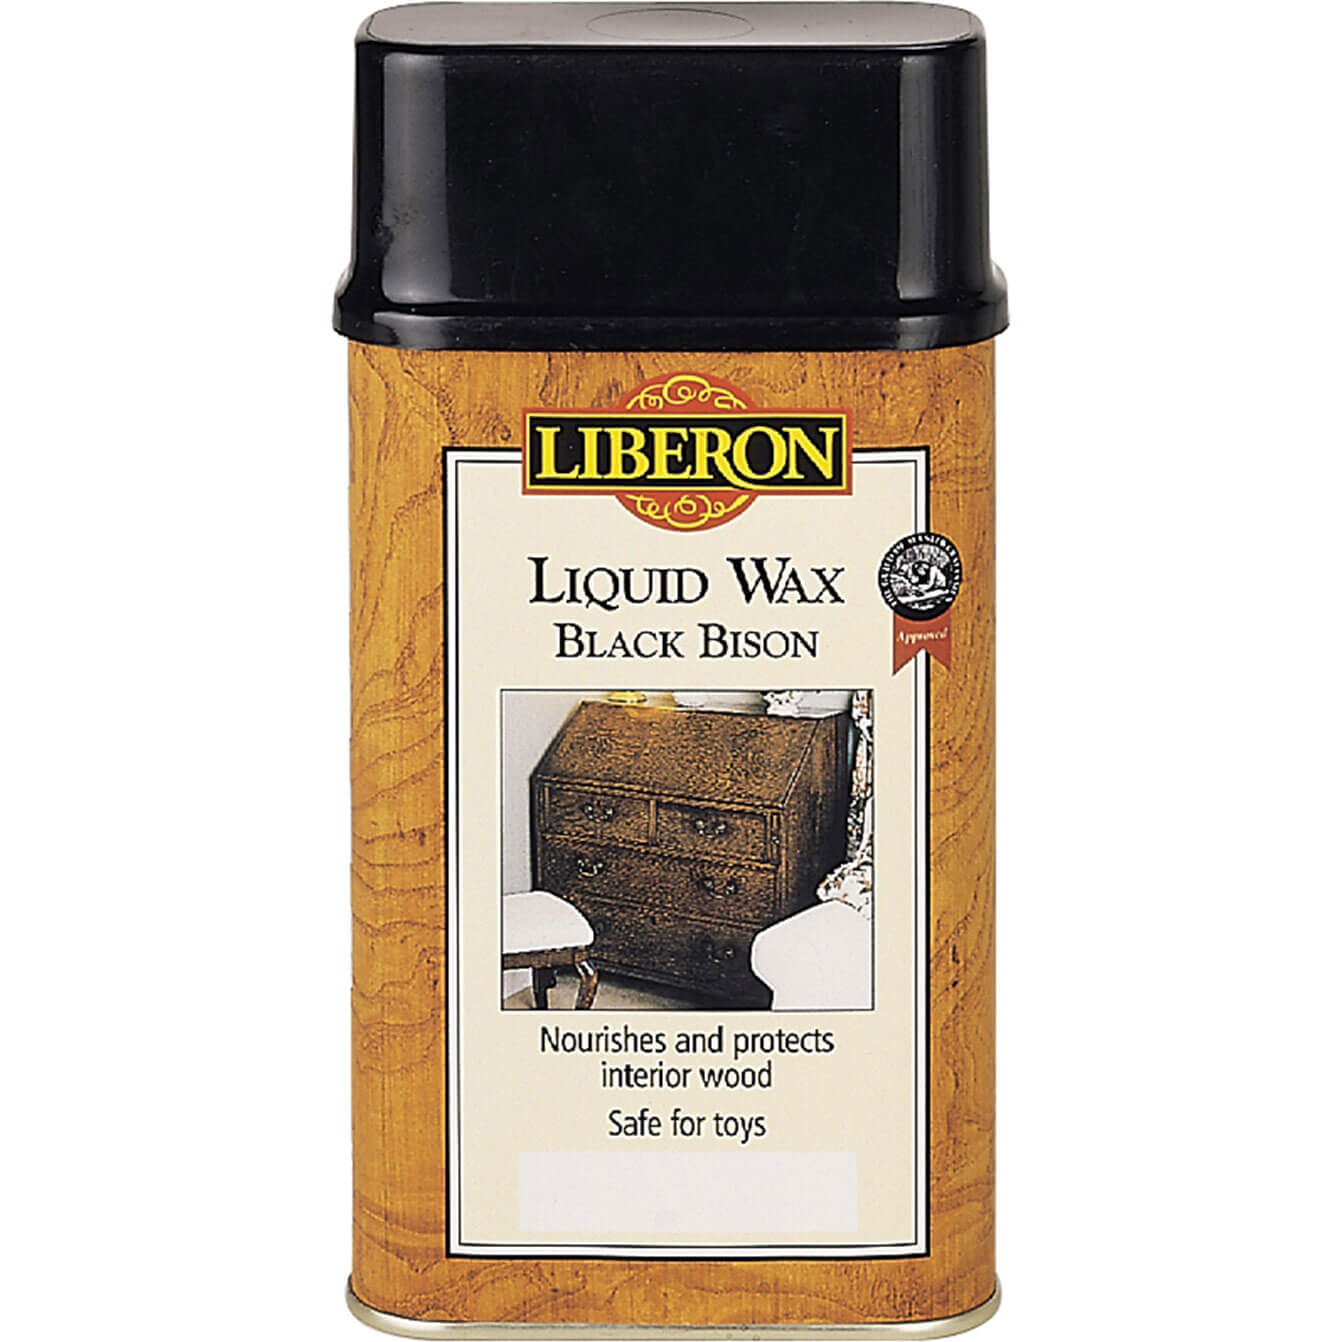 Image of Liberon Black Bison Liquid Wax Antique Pine 500ml